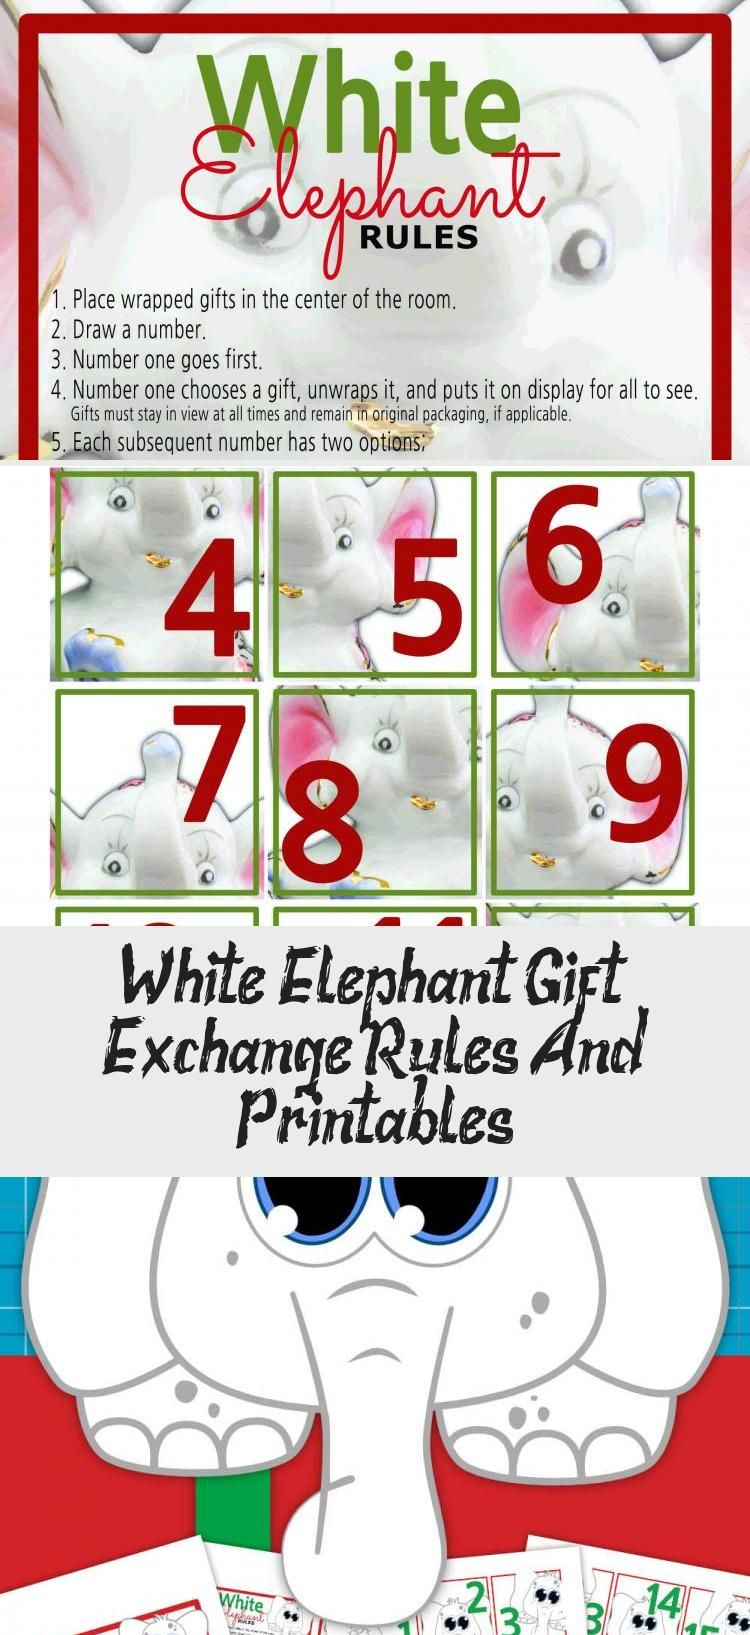 White Elephant Gift Exchange Rules And Printables Gifts